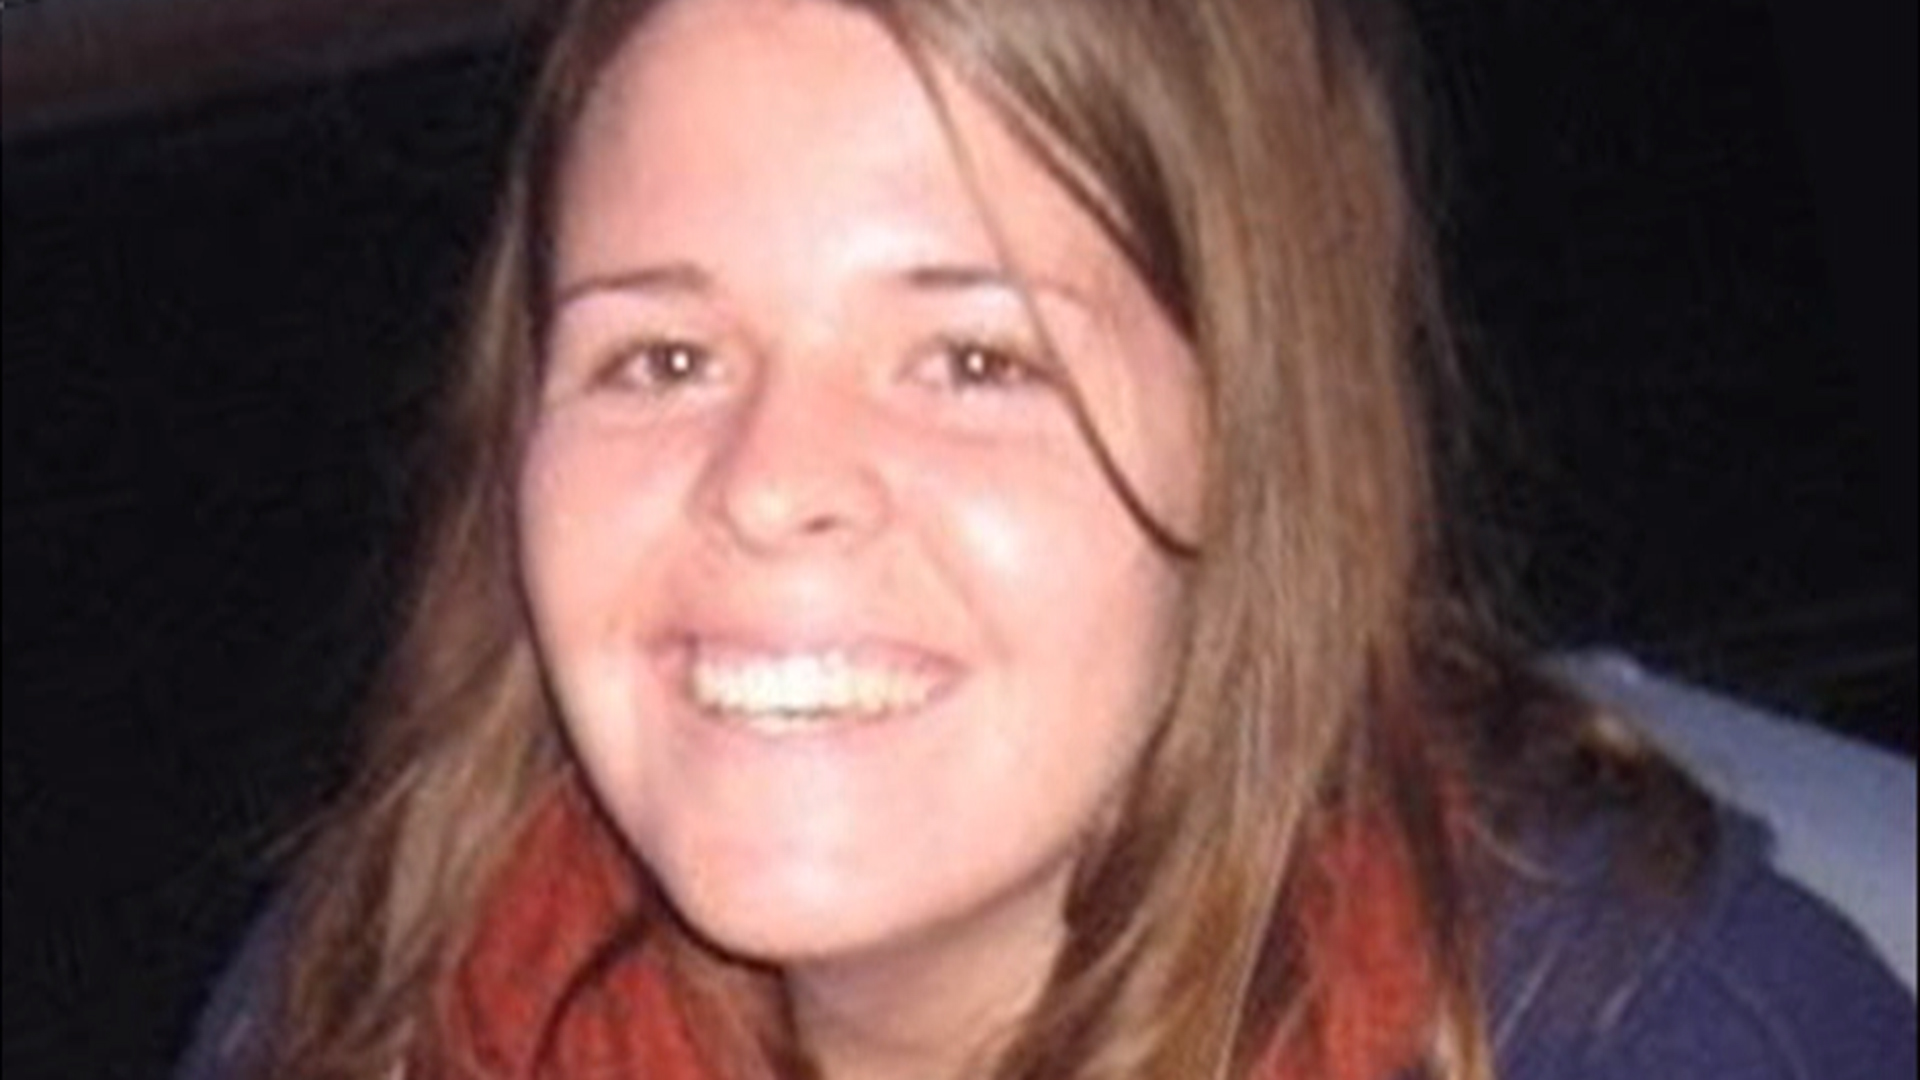 ISIS Hostage Kayla Mueller Wrote From Captivity: 'I Have a Lot of Fight Left'